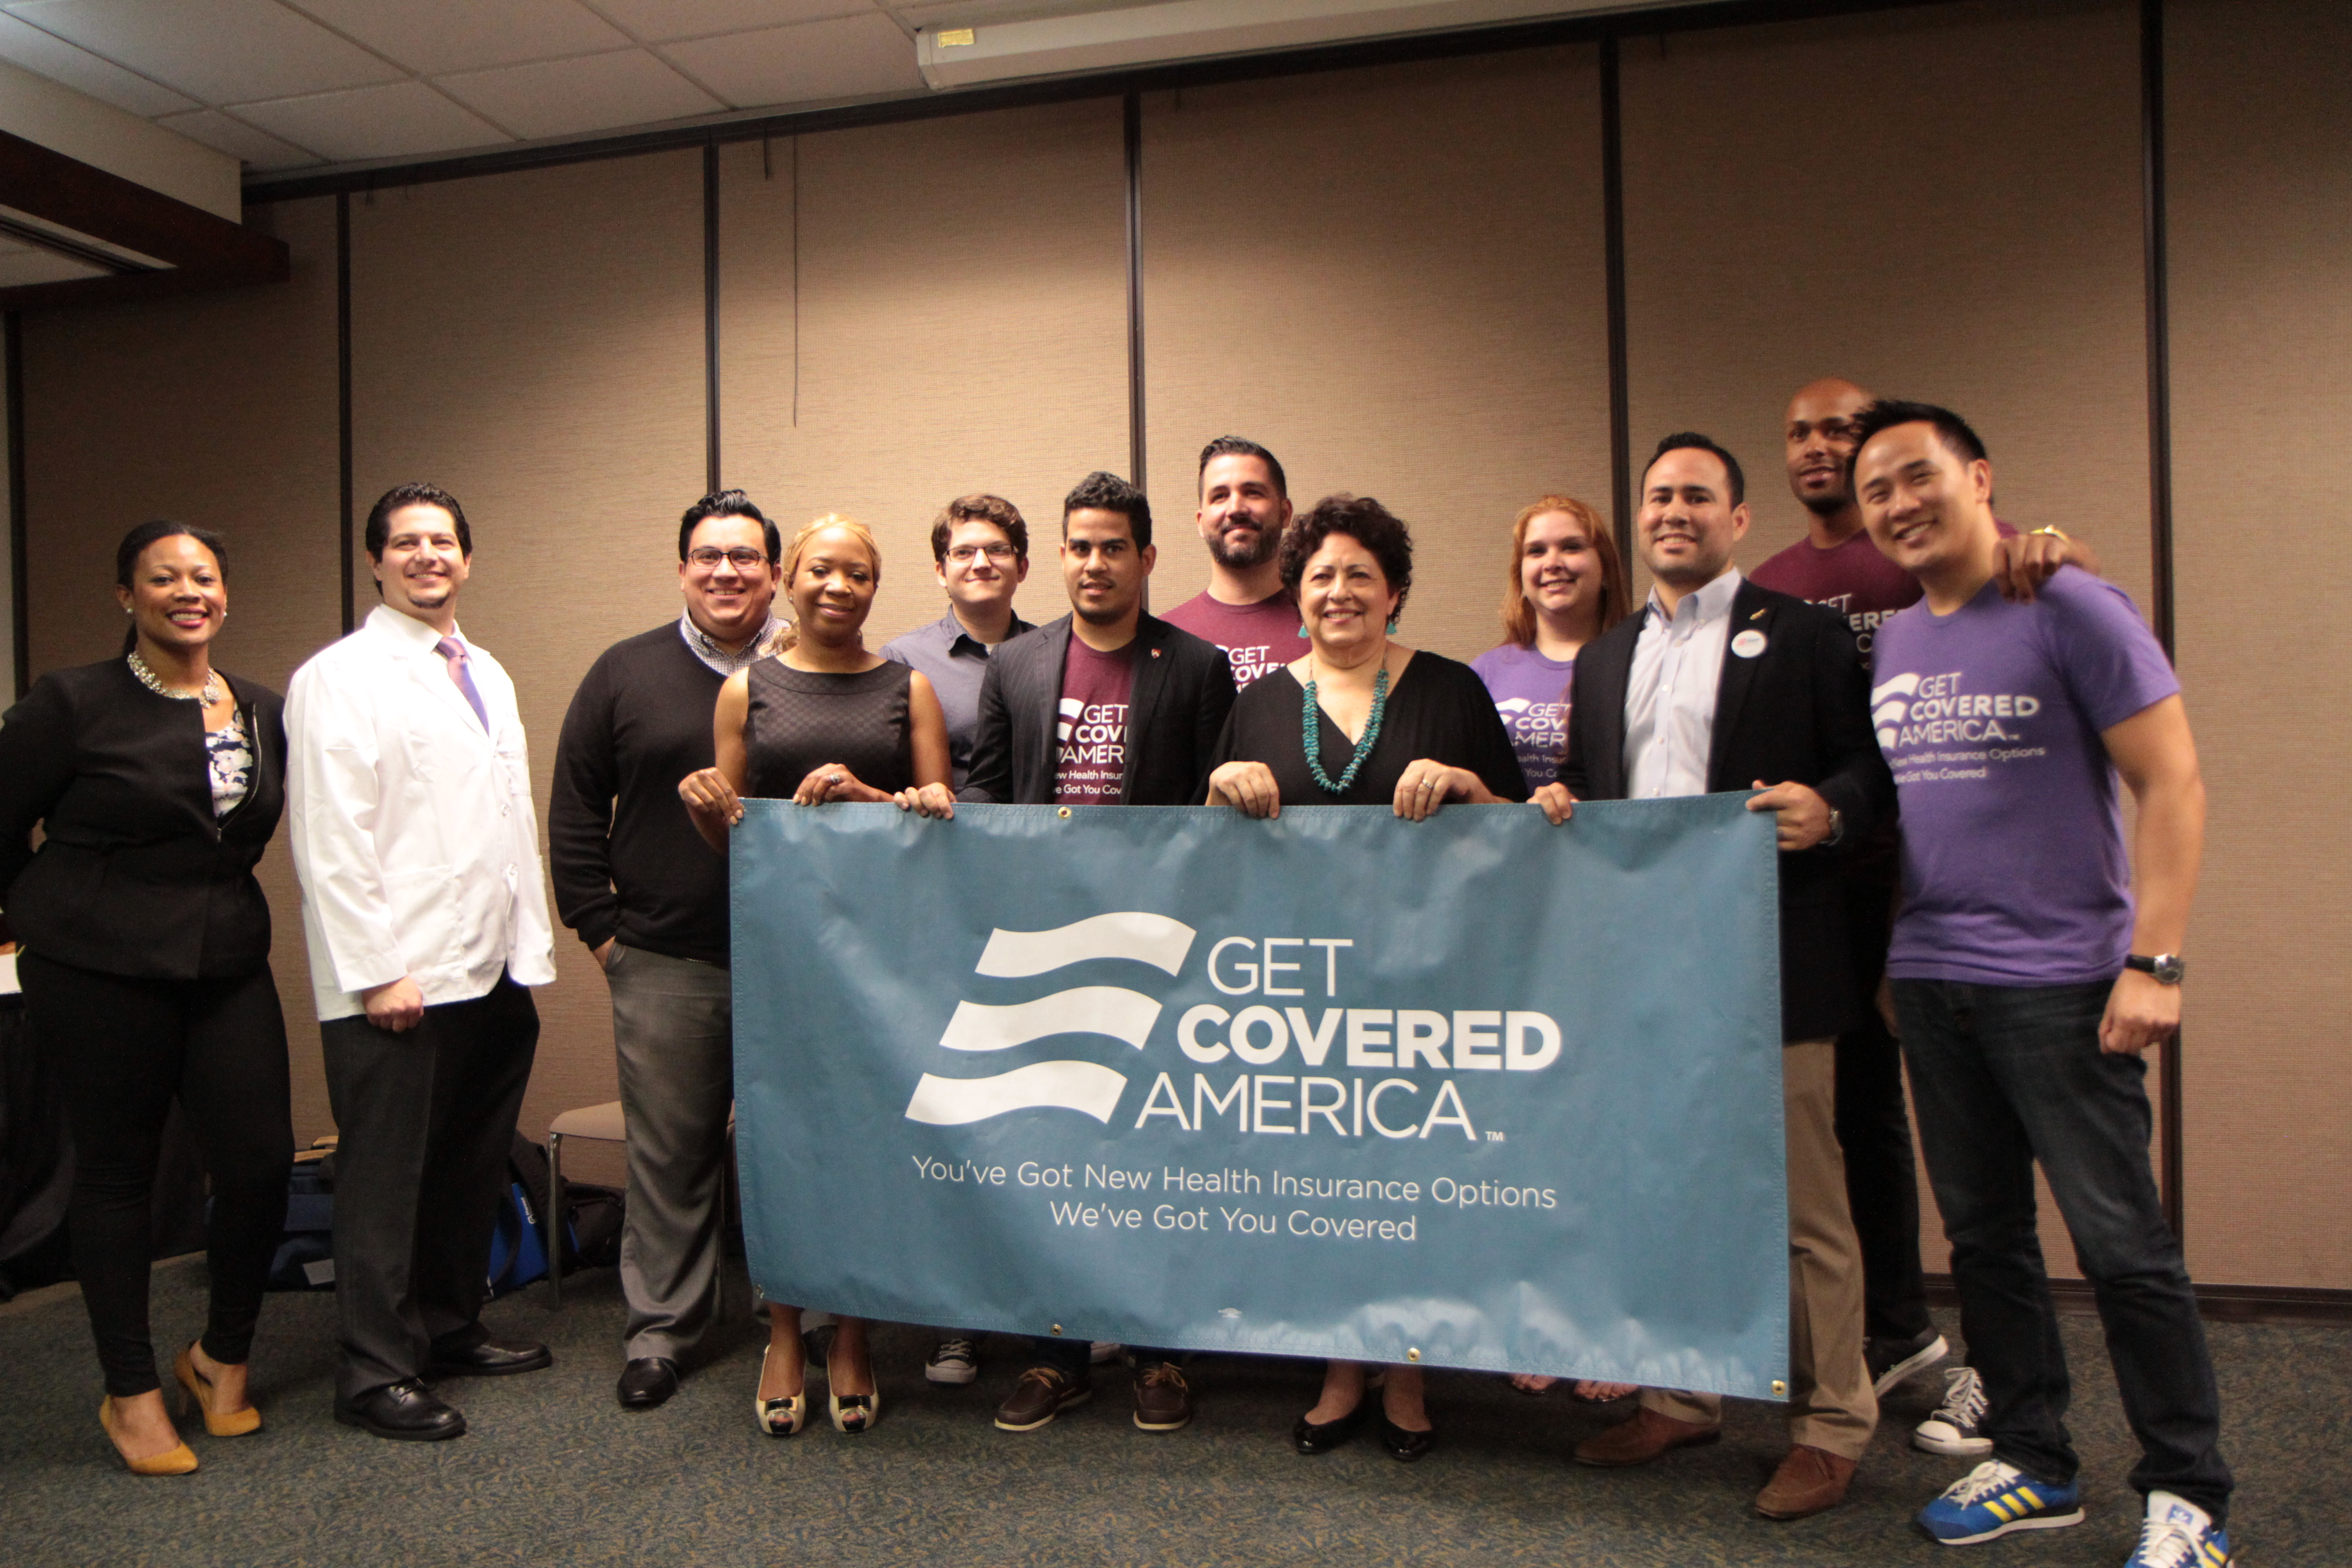 Director Archuleta attends an Affordable Care Act event in Miami